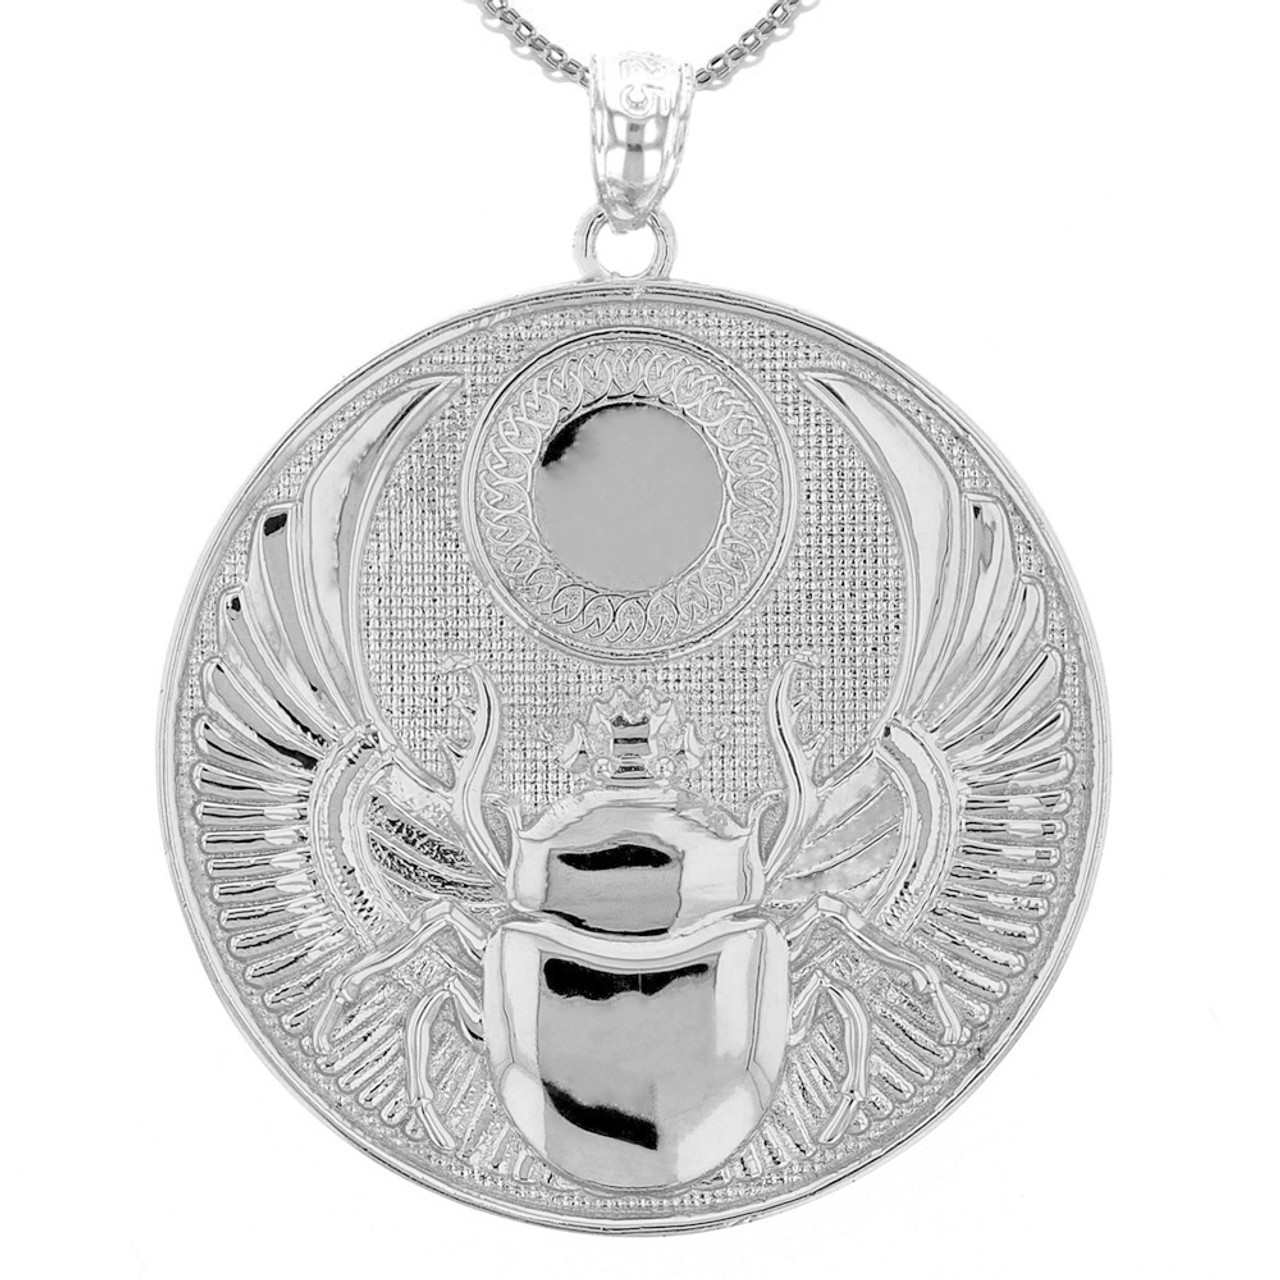 reproduction coins pendants greek an symbols coin silver ancient dekadrachm of athena jewellery sterling wisdom owl and pendant athens the necklace jewelry